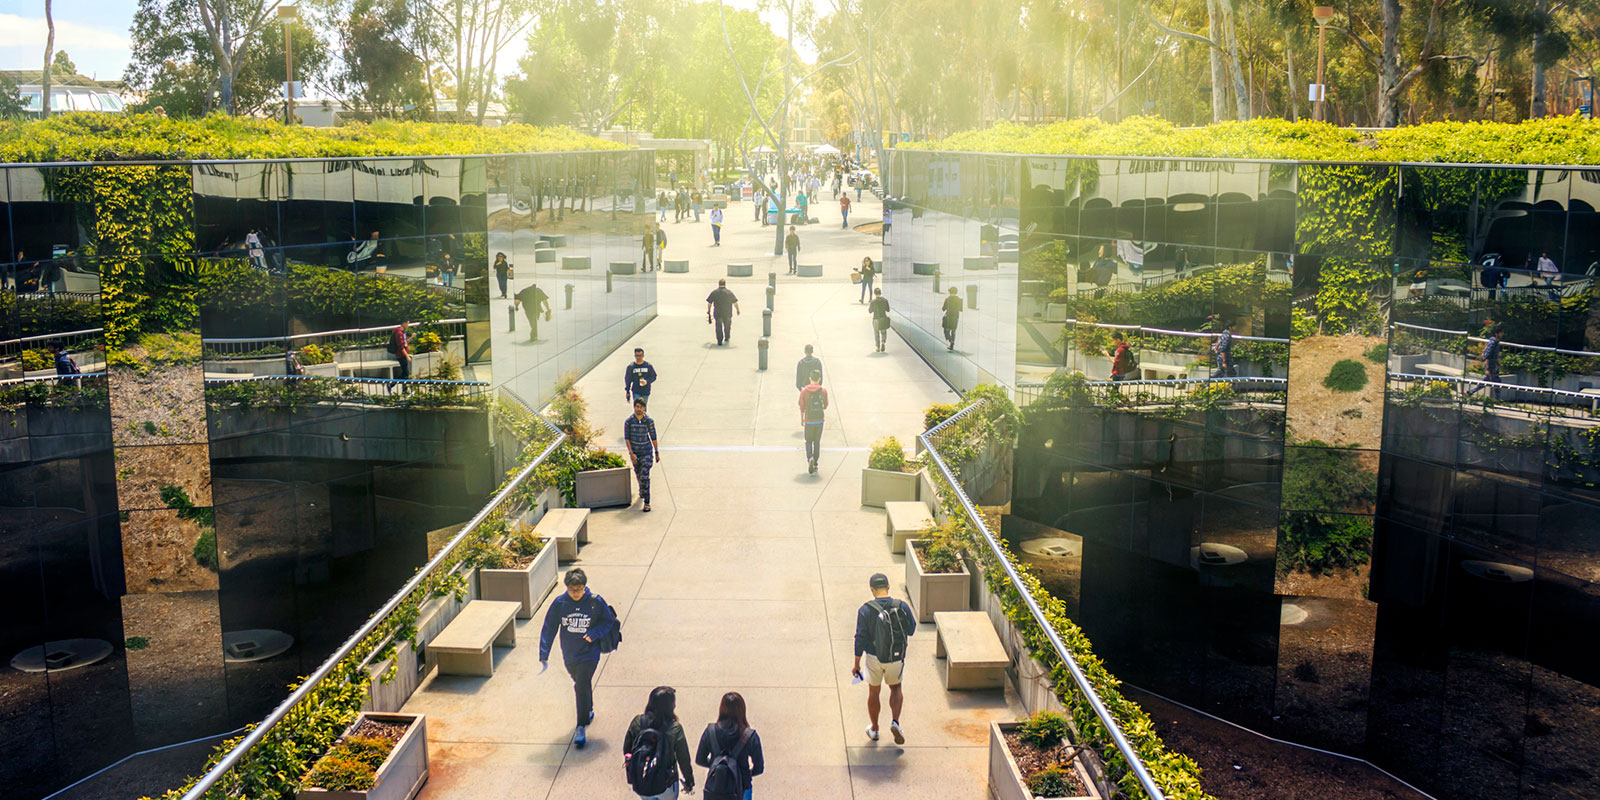 What Has Changed About Applying to the University of California?